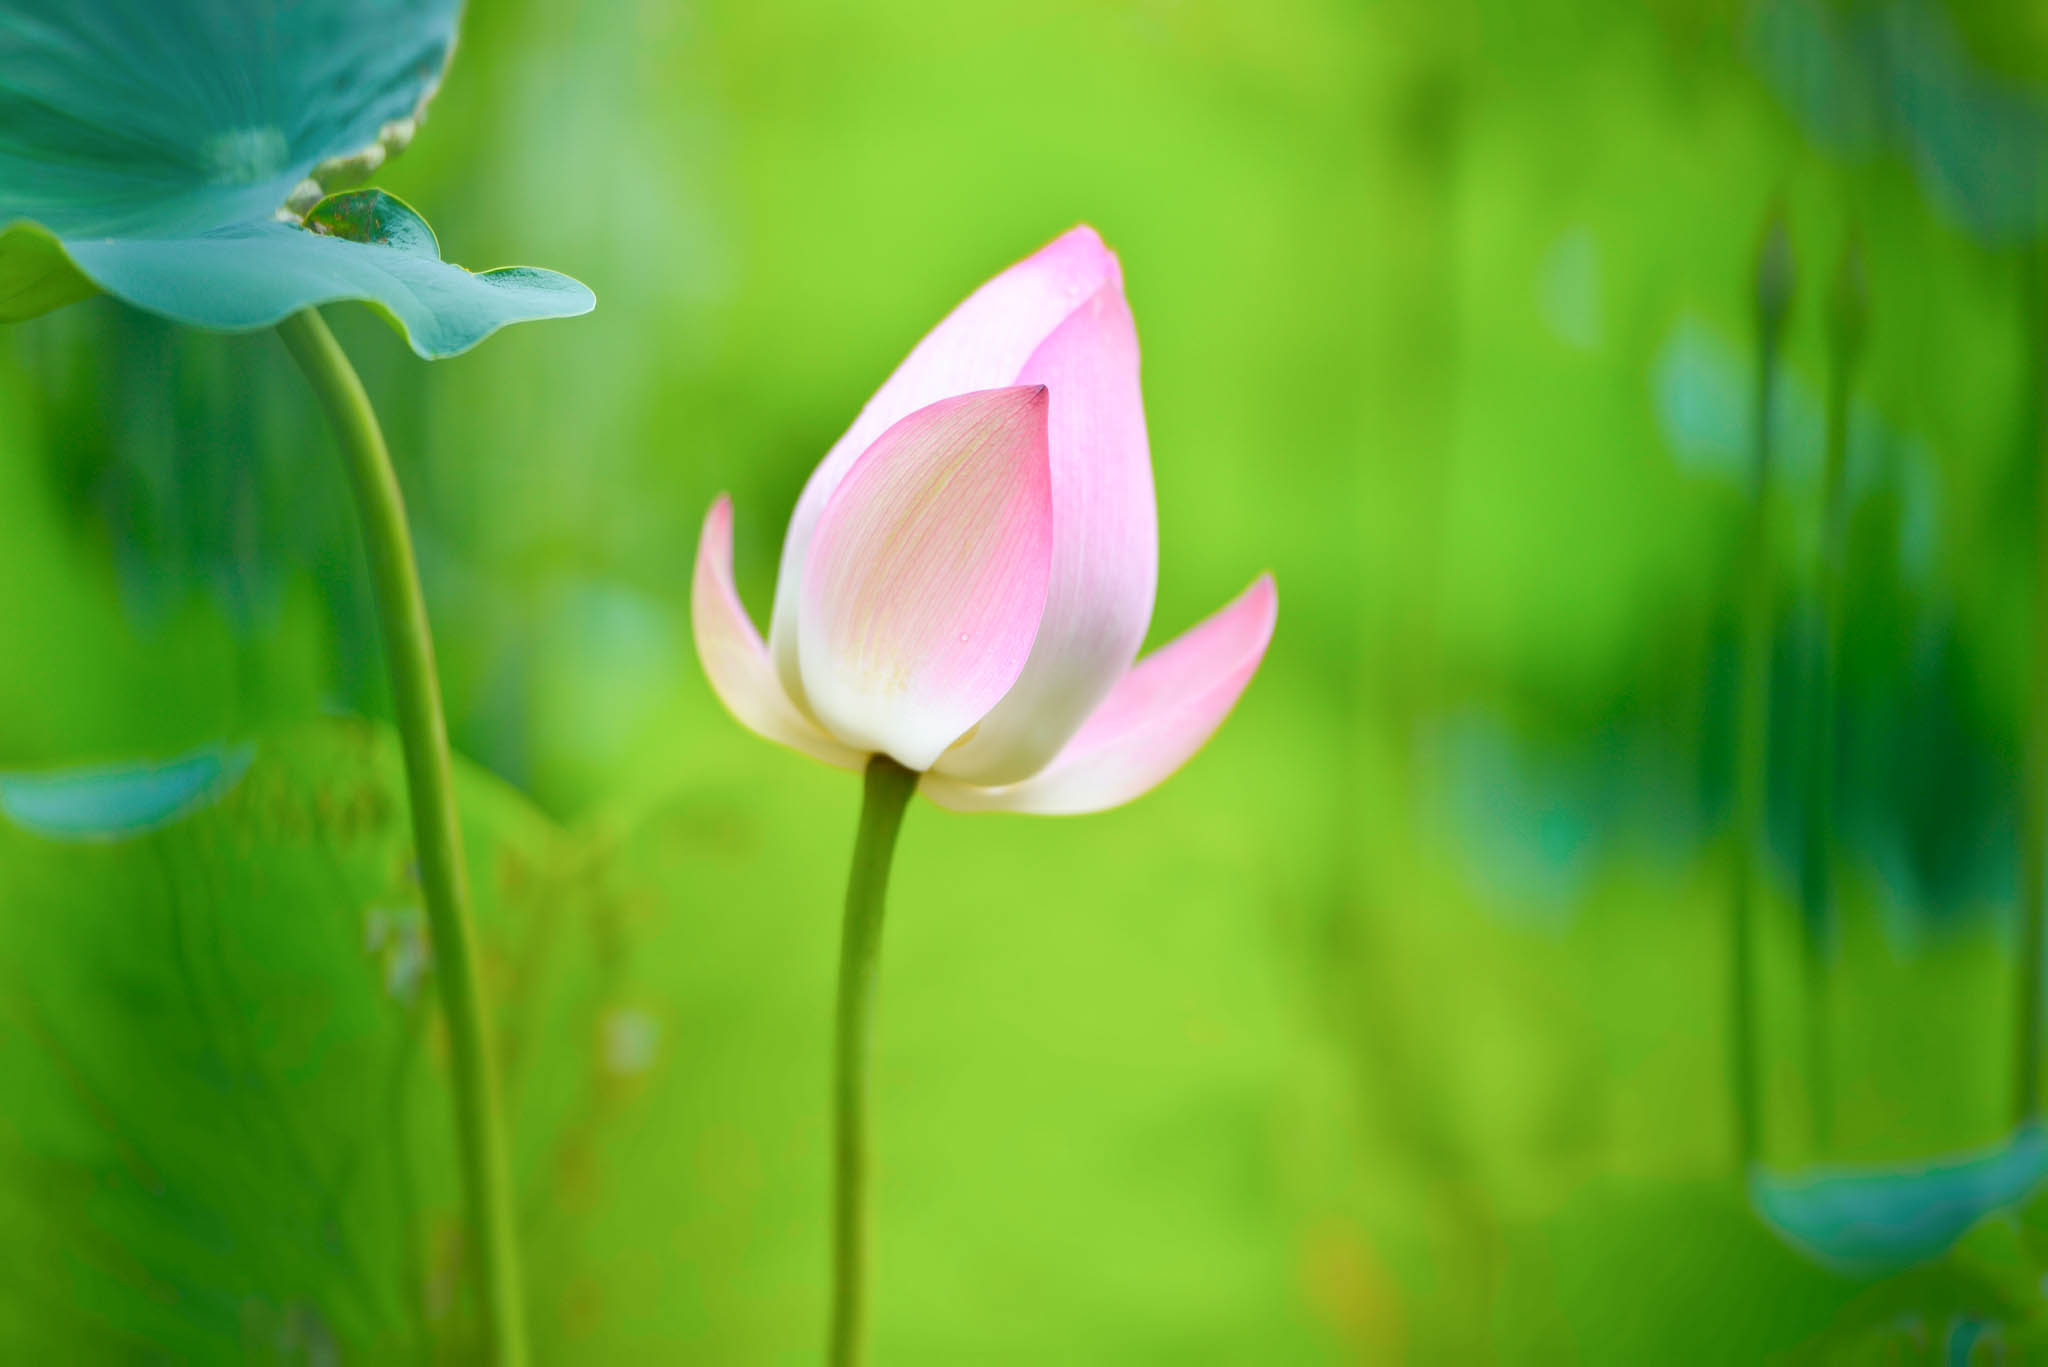 New Hollywood Movies Hd Wallpapers Lotus Flower Beautiful High Quality Hd Wallpapers All Hd